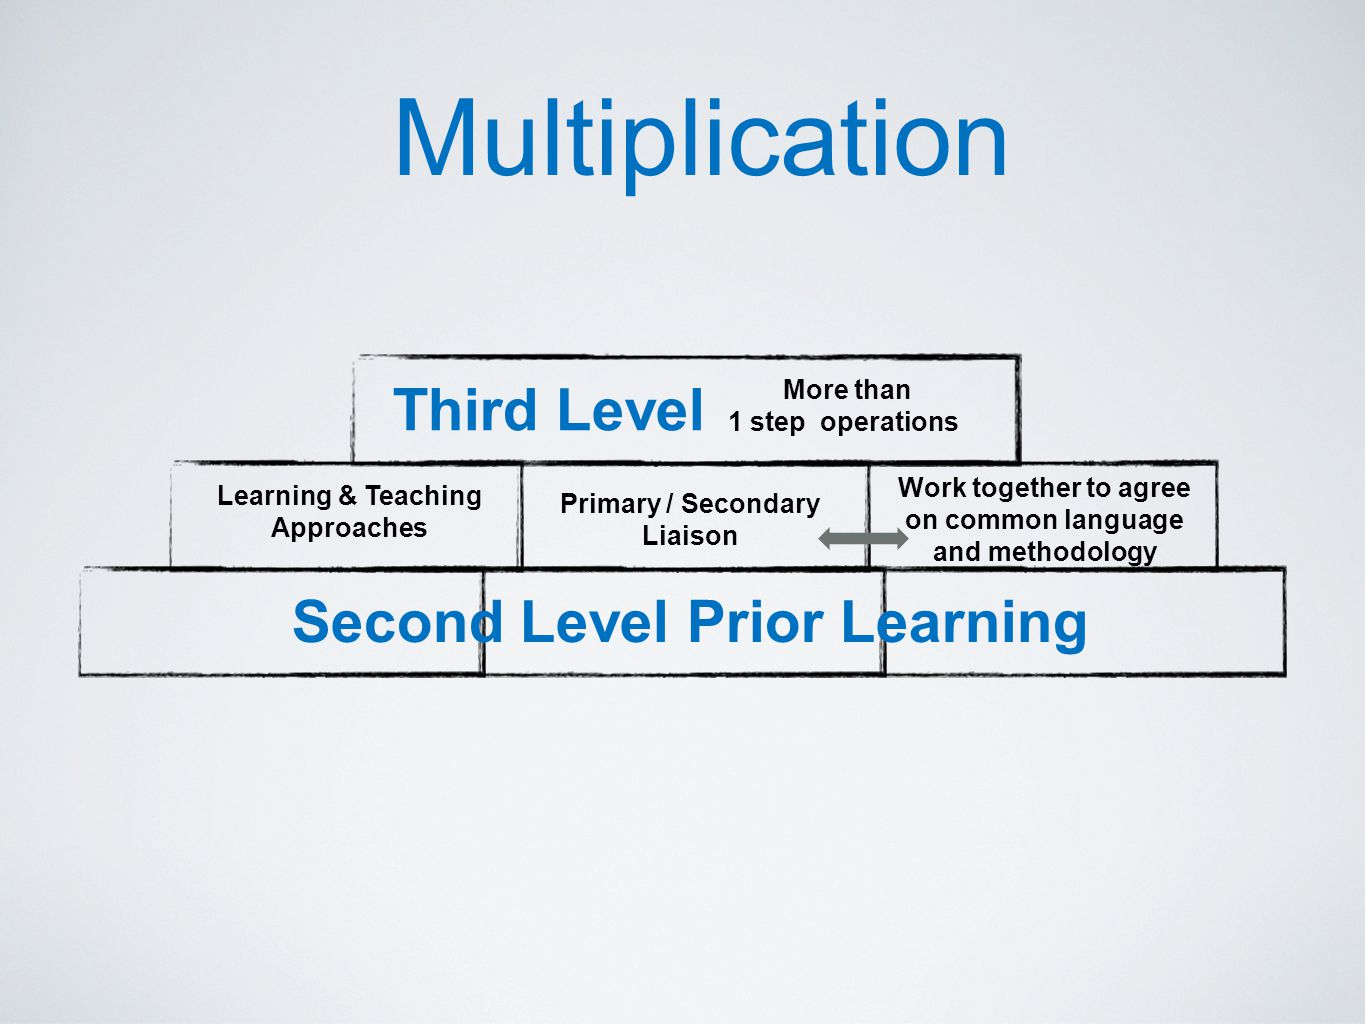 Learning & Teaching Approaches Primary / Secondary Liaison Work together to agree on common language and methodology Second Level Prior Learning Third Level More than 1 step operations Multiplication